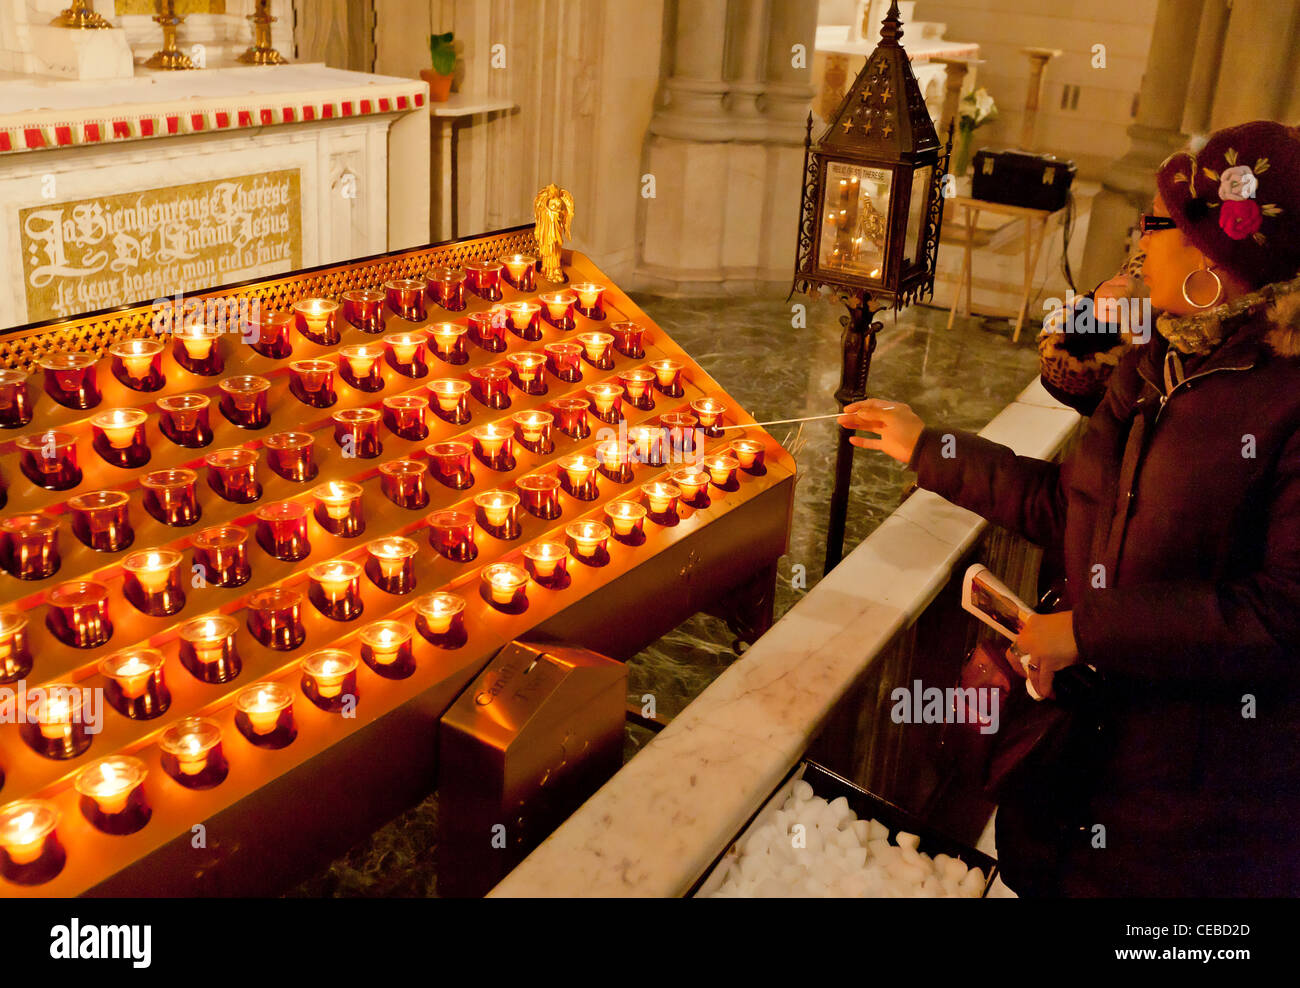 A person lights a candle in a church. - Stock Image